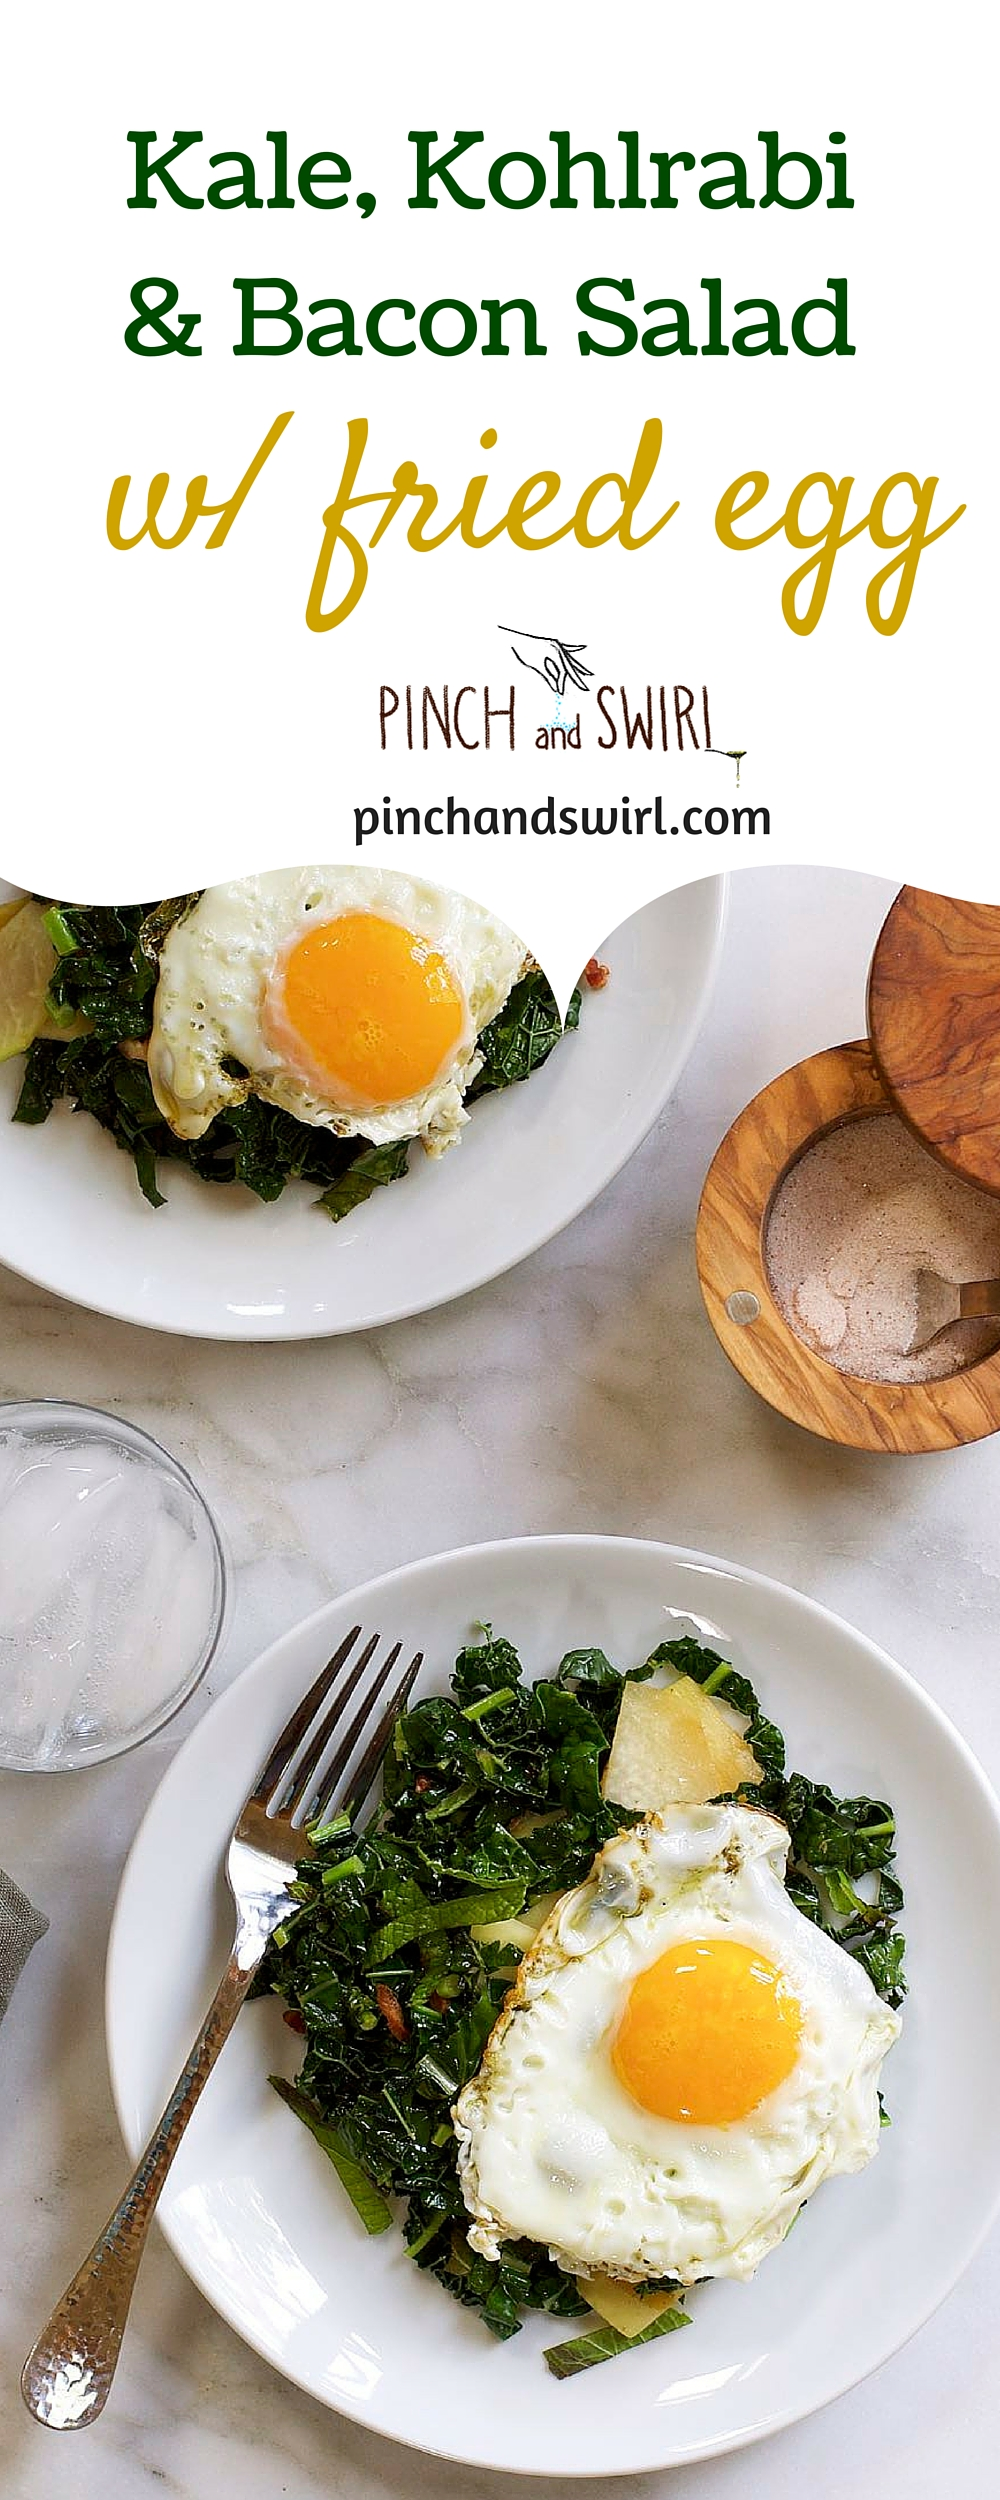 Kale Kohlrabi and Bacon Salad with Fried Egg #kale #salad #healthyrecipes #putaneggonit